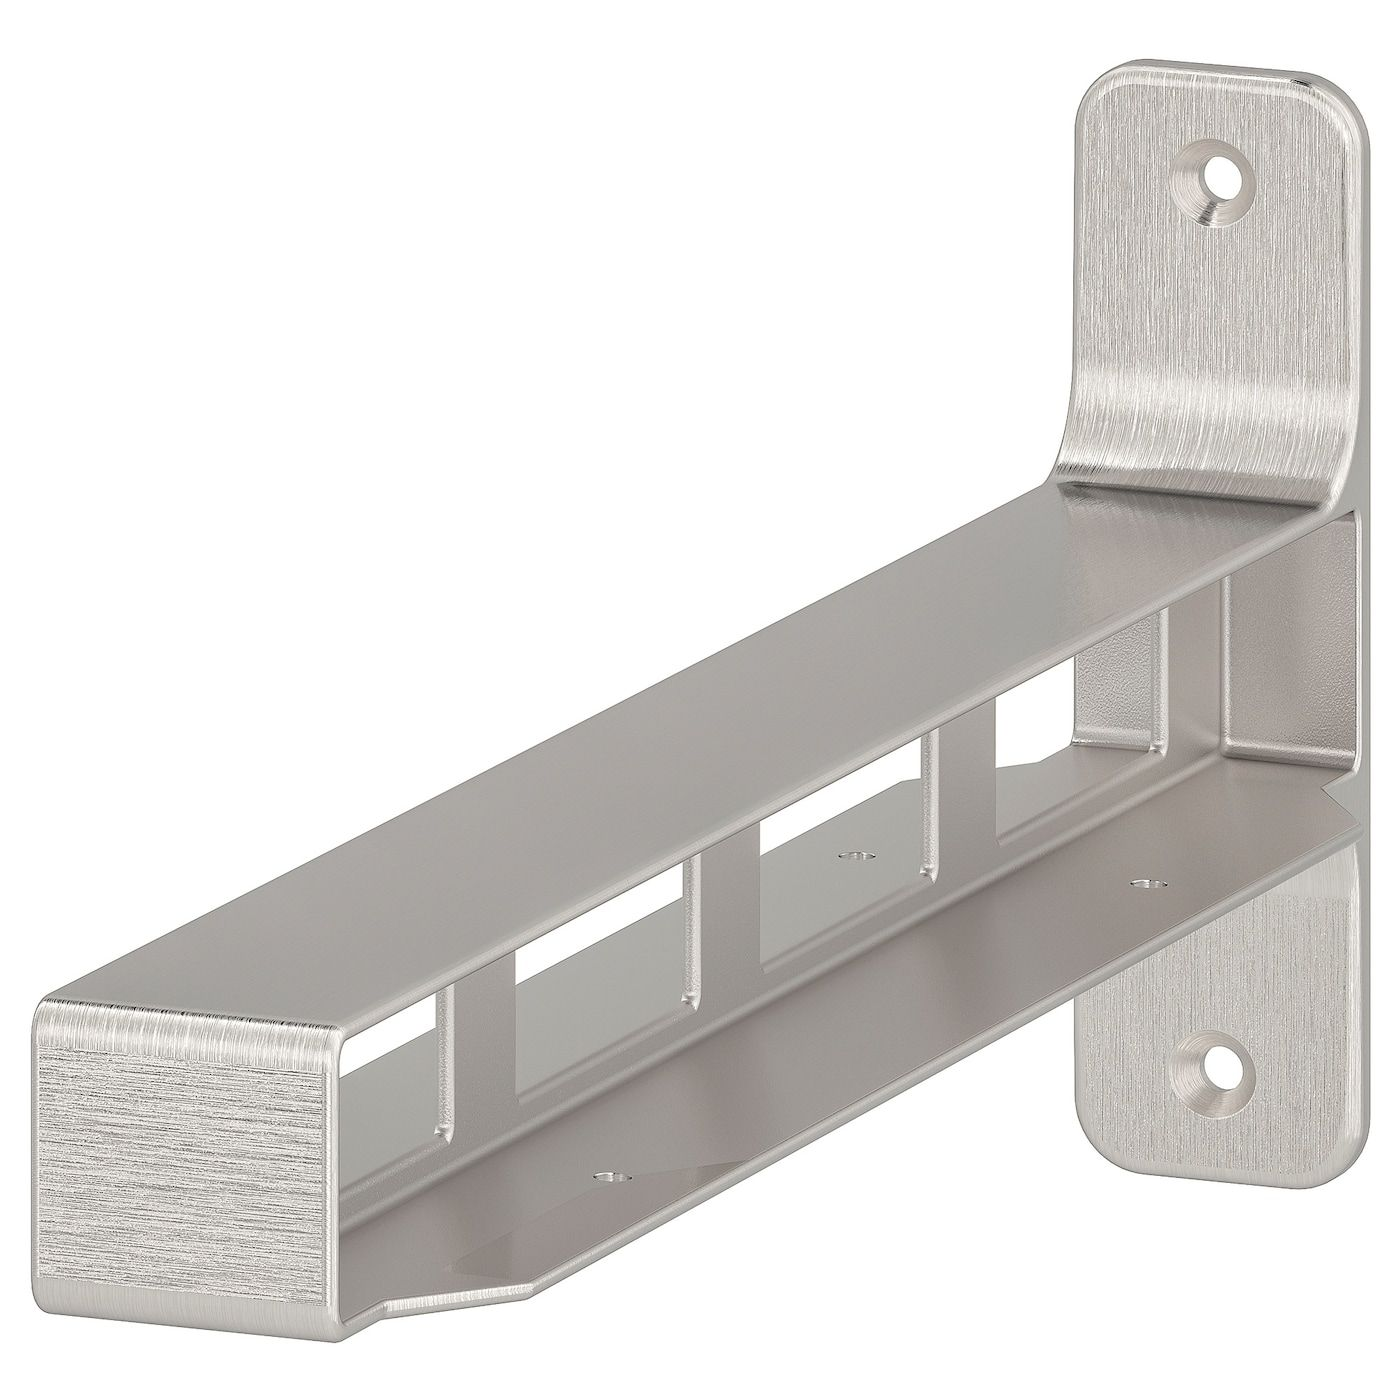 IKEA GRANHULT Connecting bracket nickel plated Best